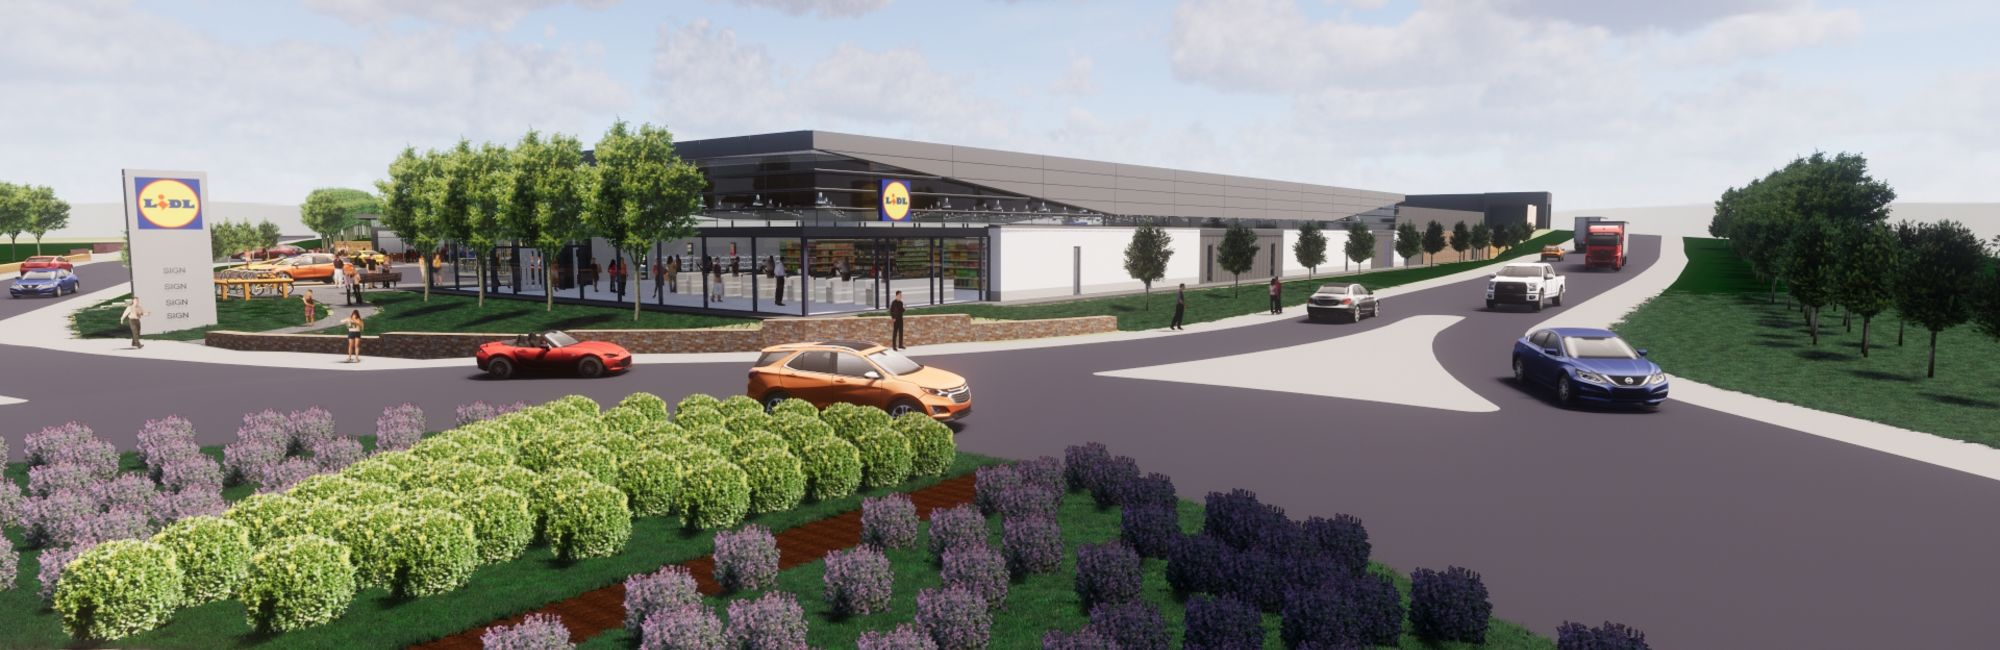 Galway store lidl planing 2018